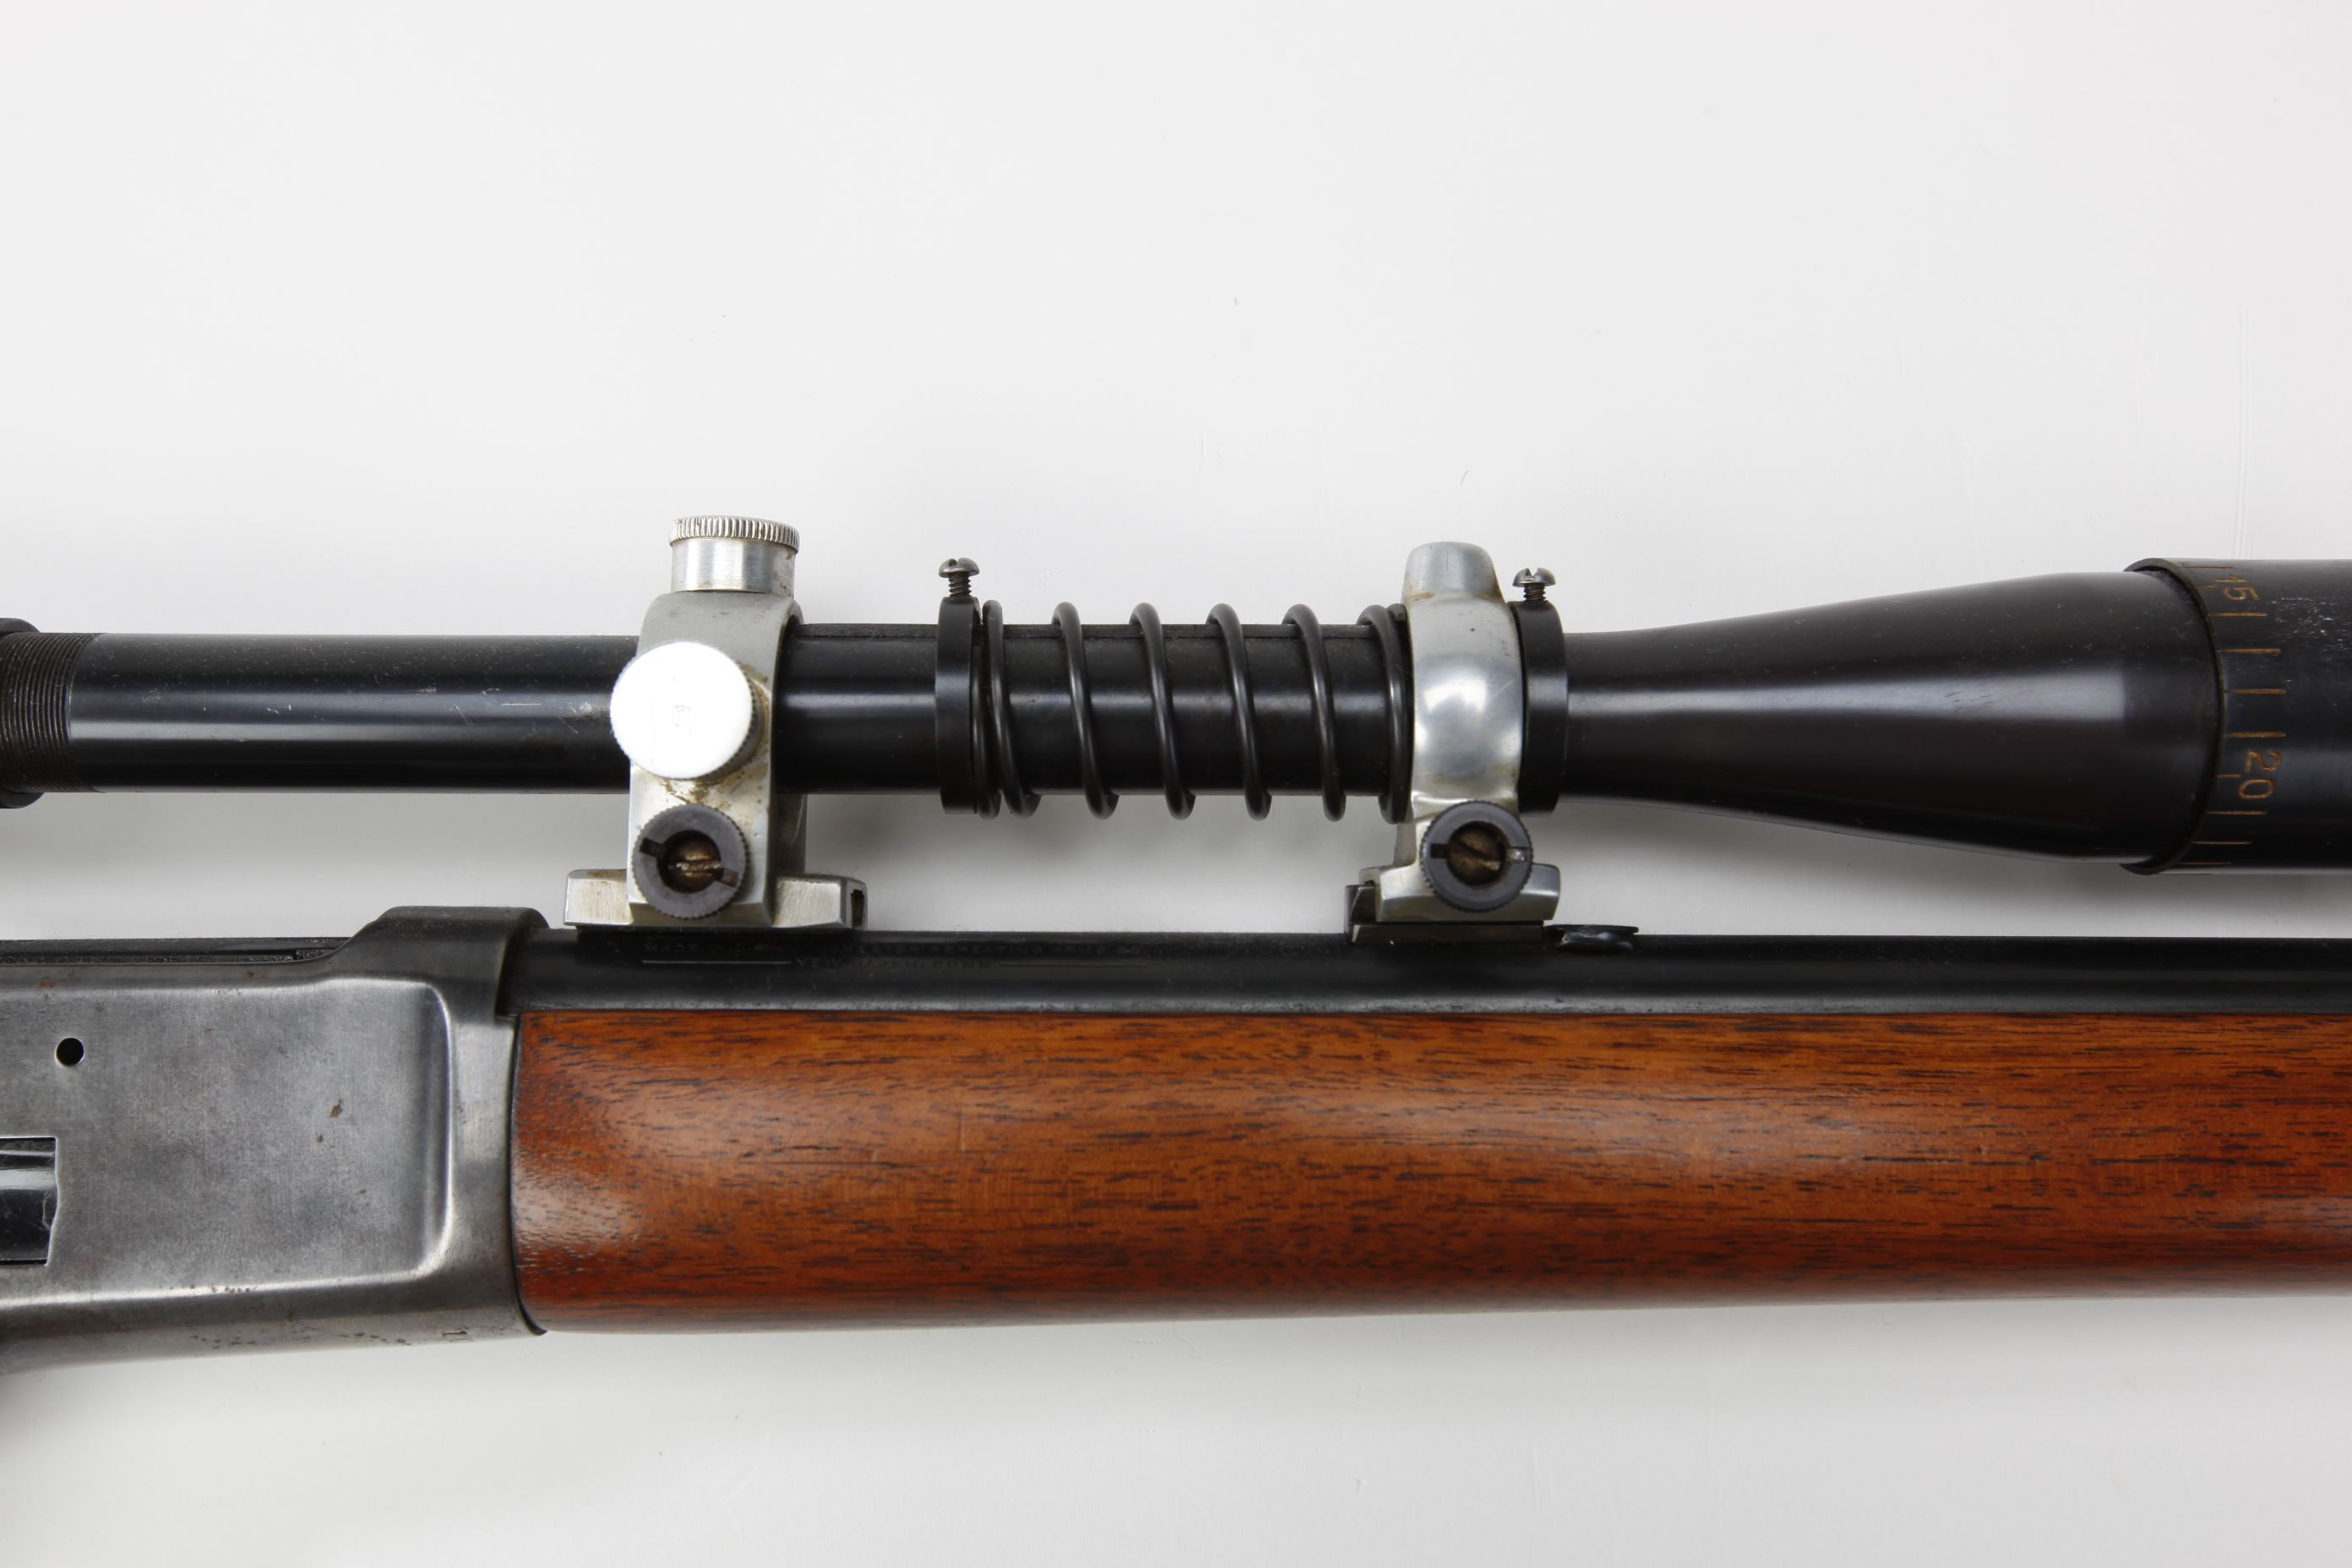 Winchester Model 65 Lever Action Rifle with Edwards telescopic sight